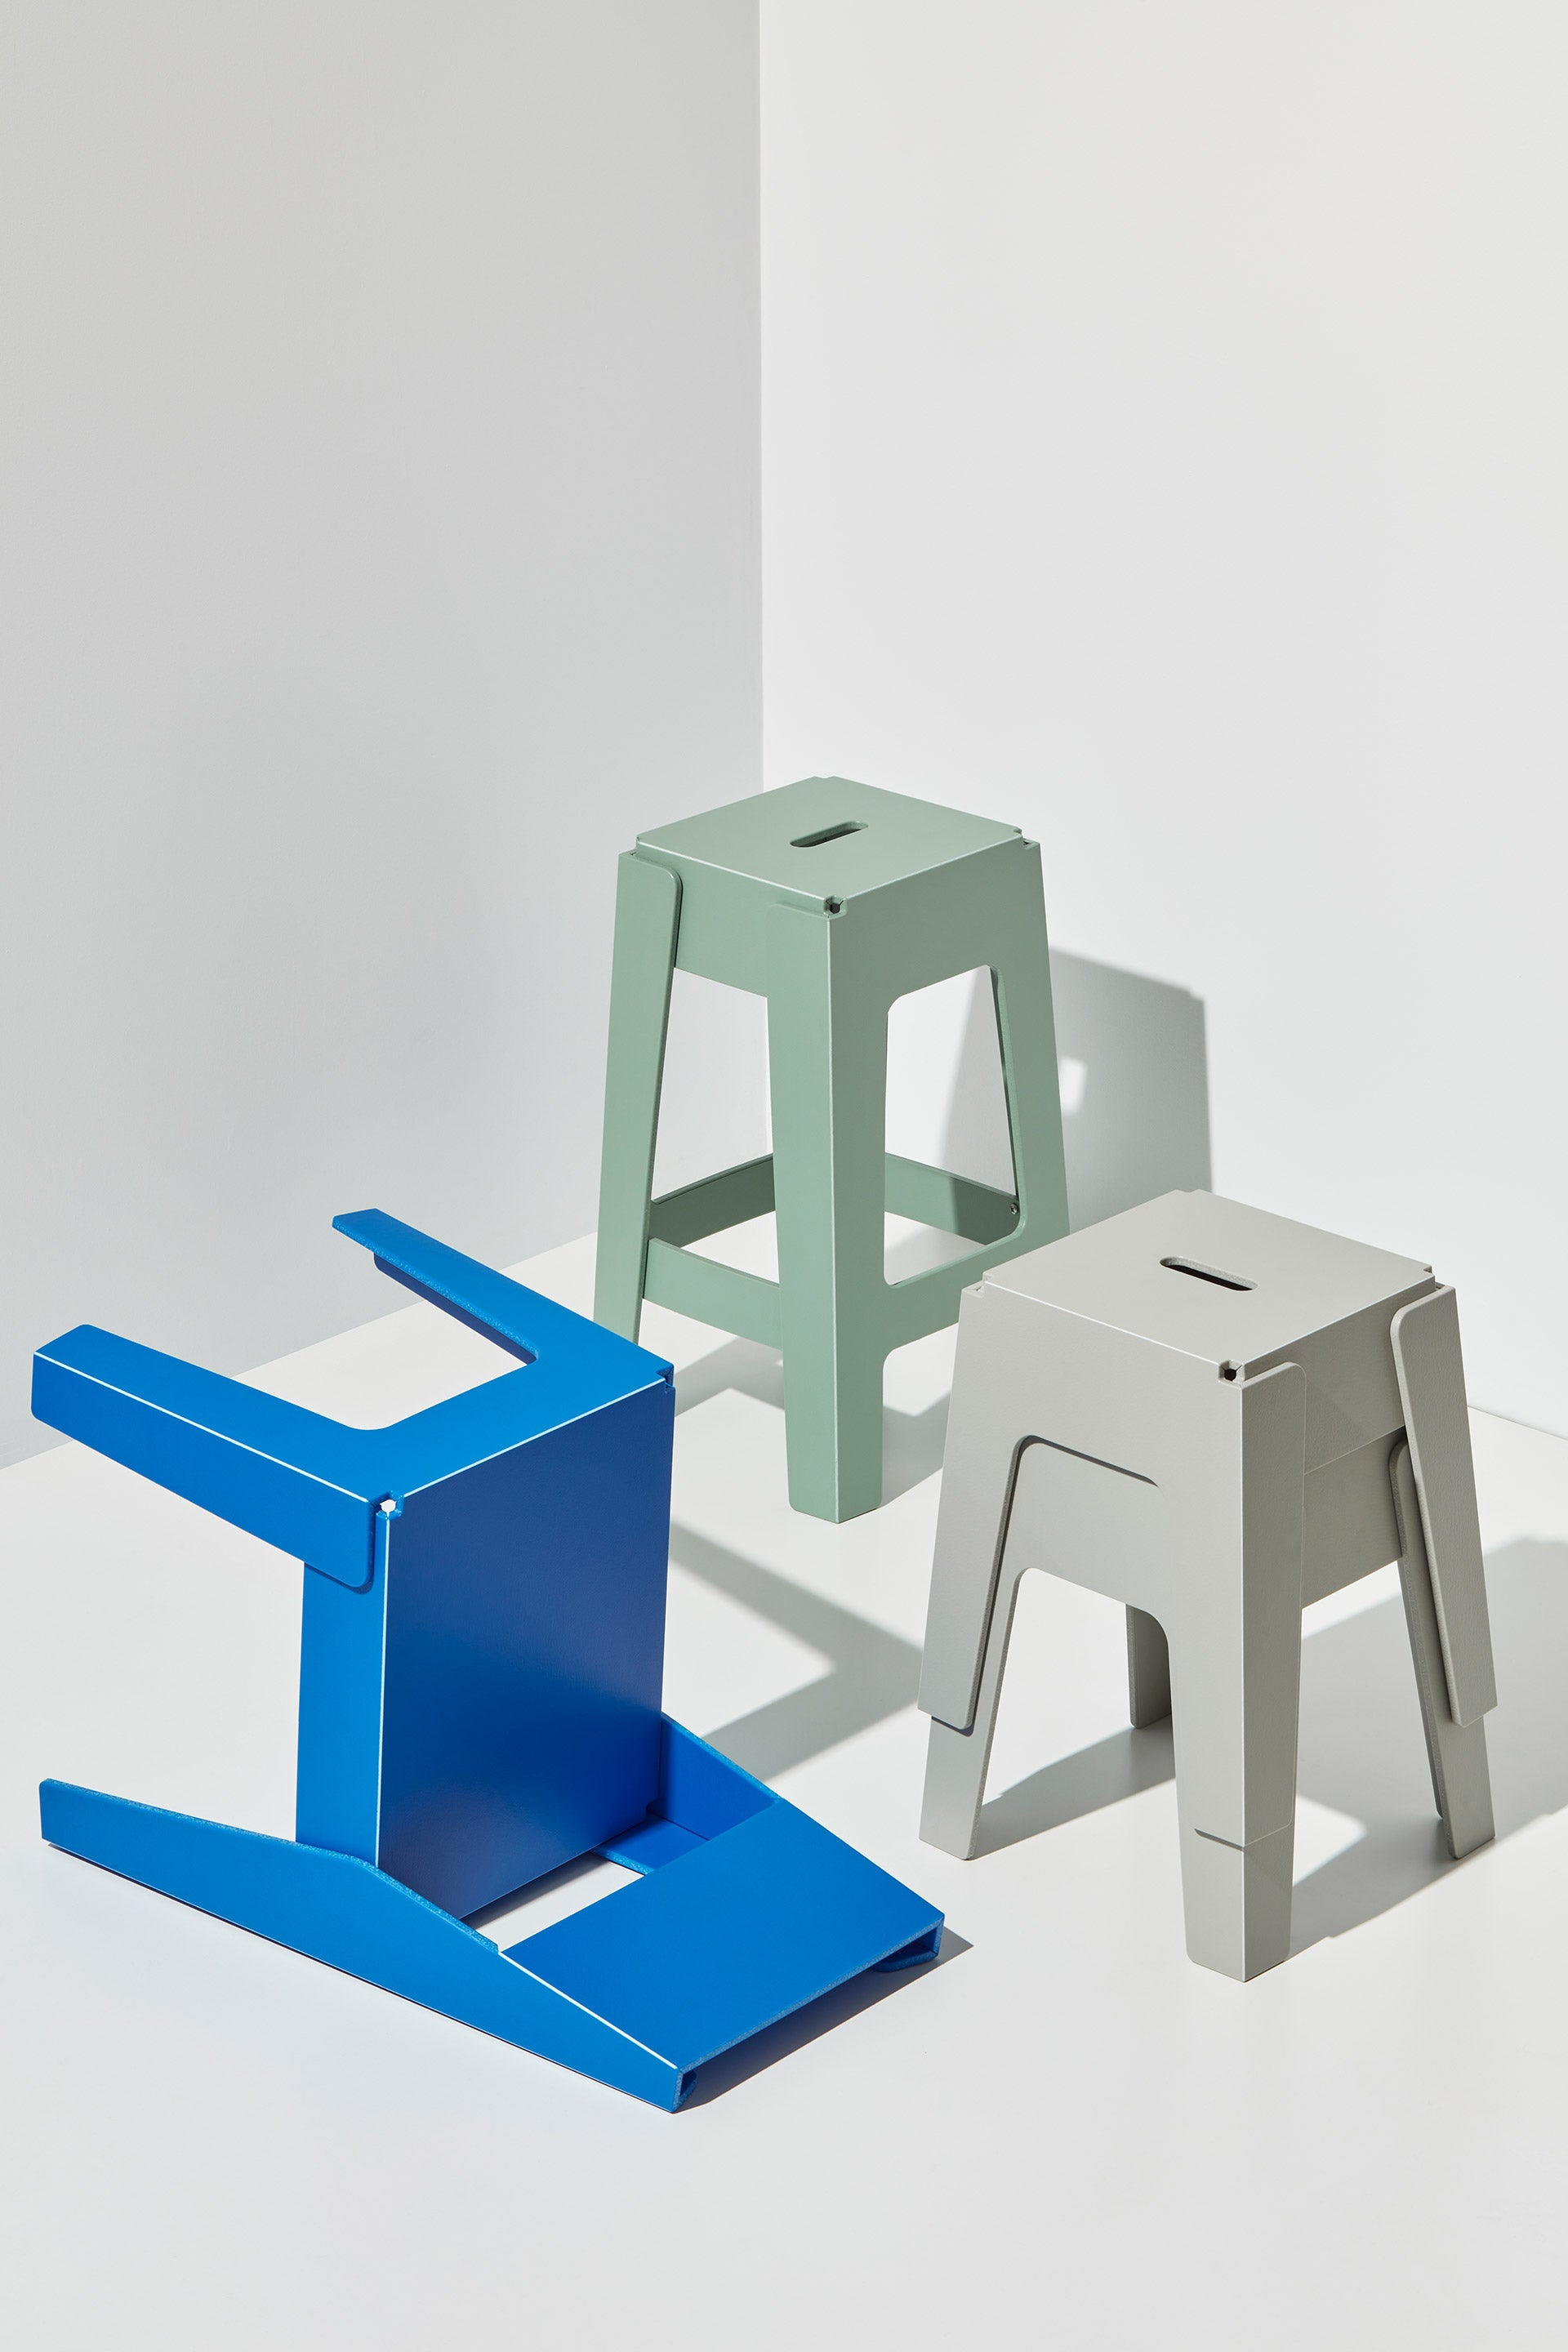 Butter Chair and Stool and Bar Stool   Recycled Plastic Furniture   Indoor Outdoor Waterproof   Gibson Karlo   DesignByThem